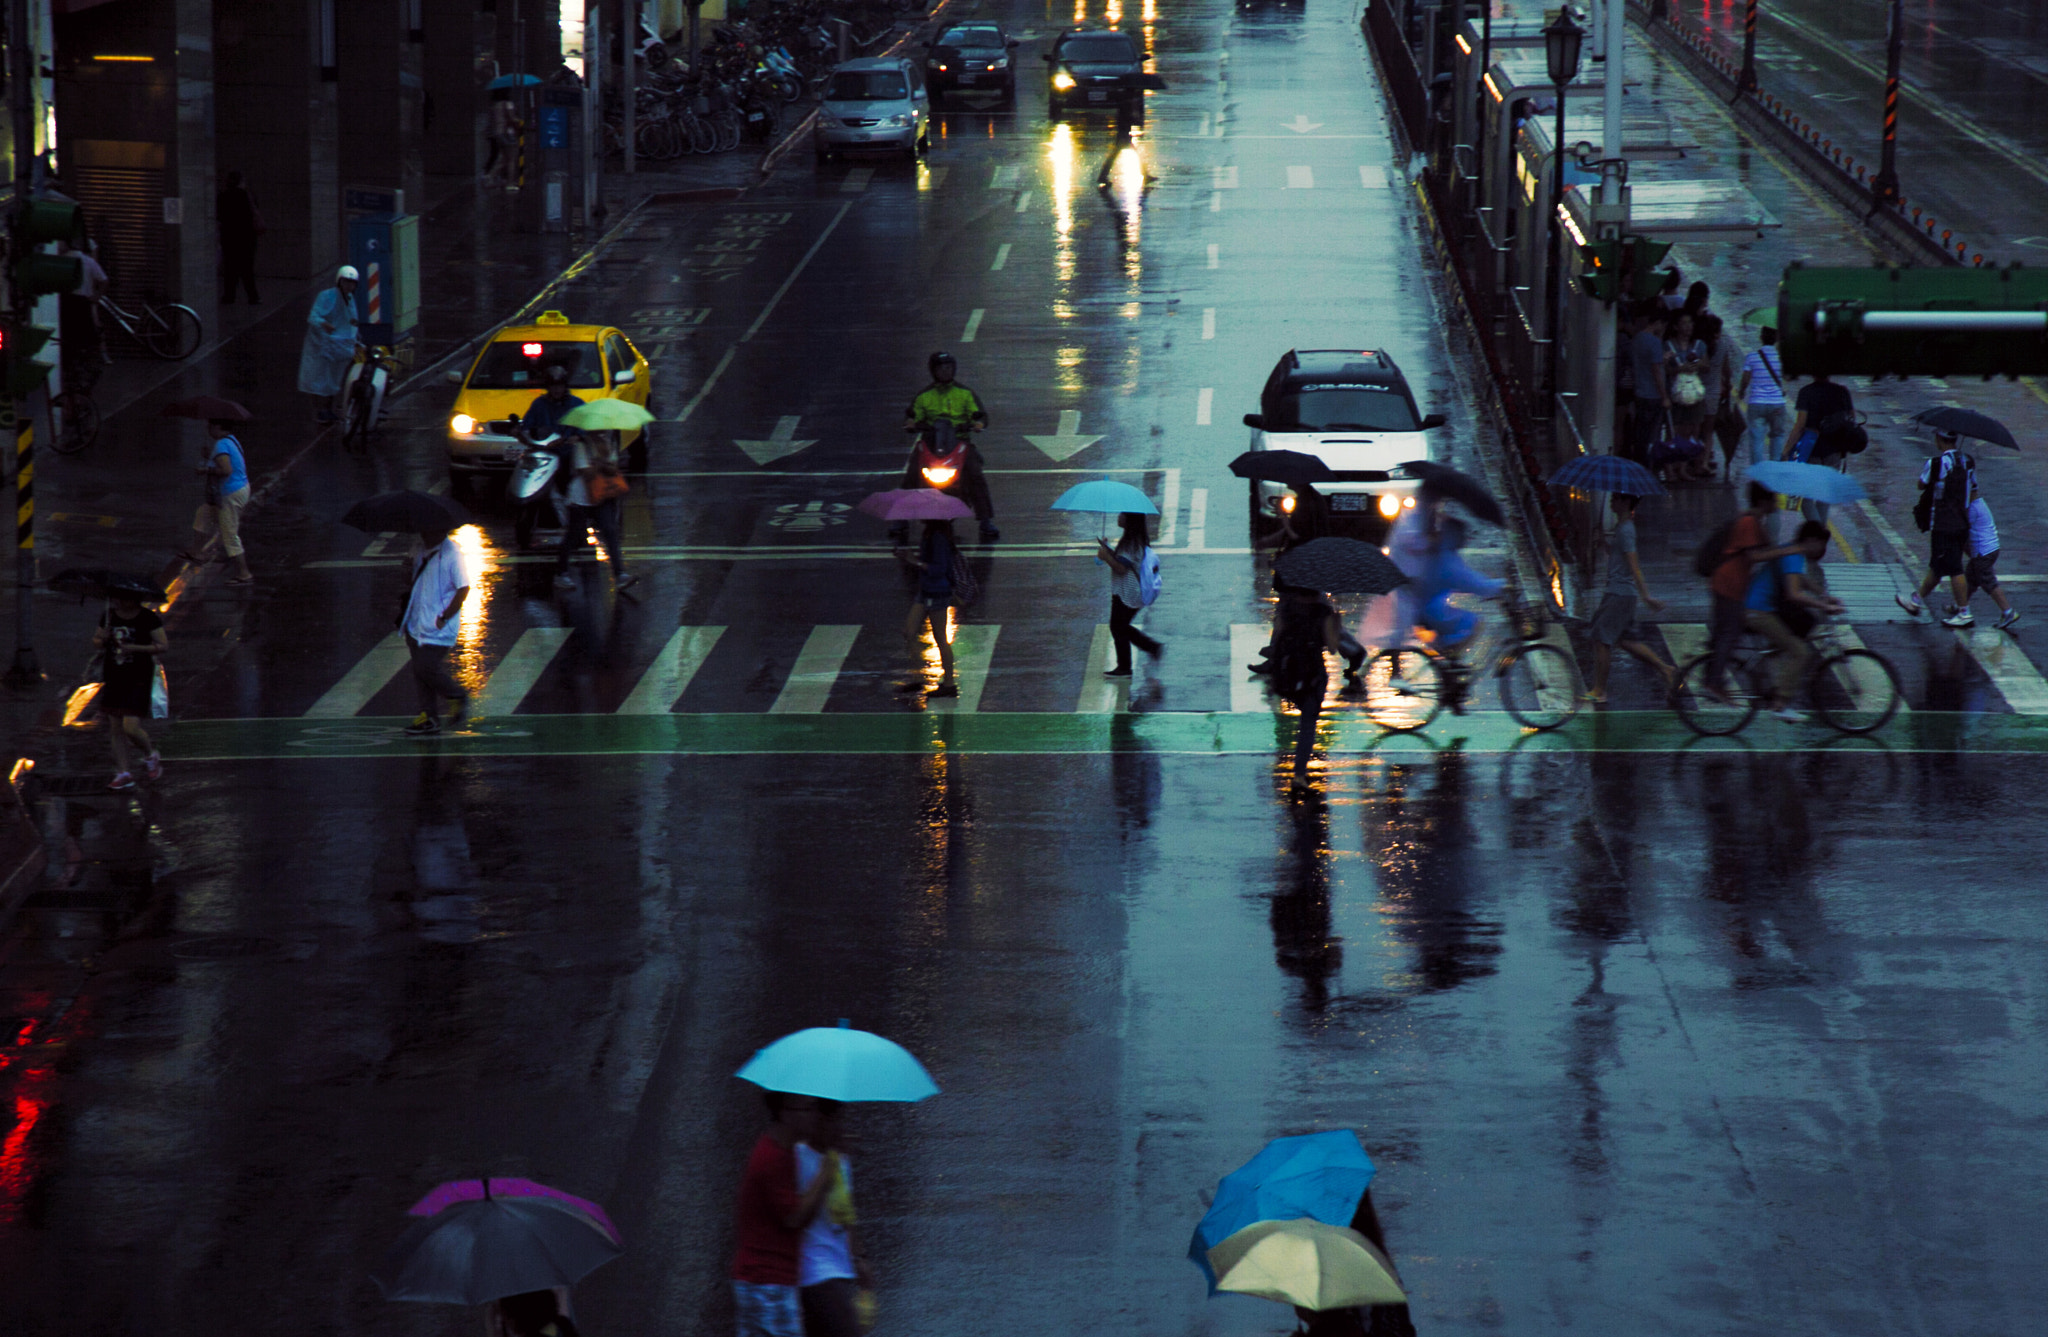 Photograph Rainy Day by Hanson Mao on 500px